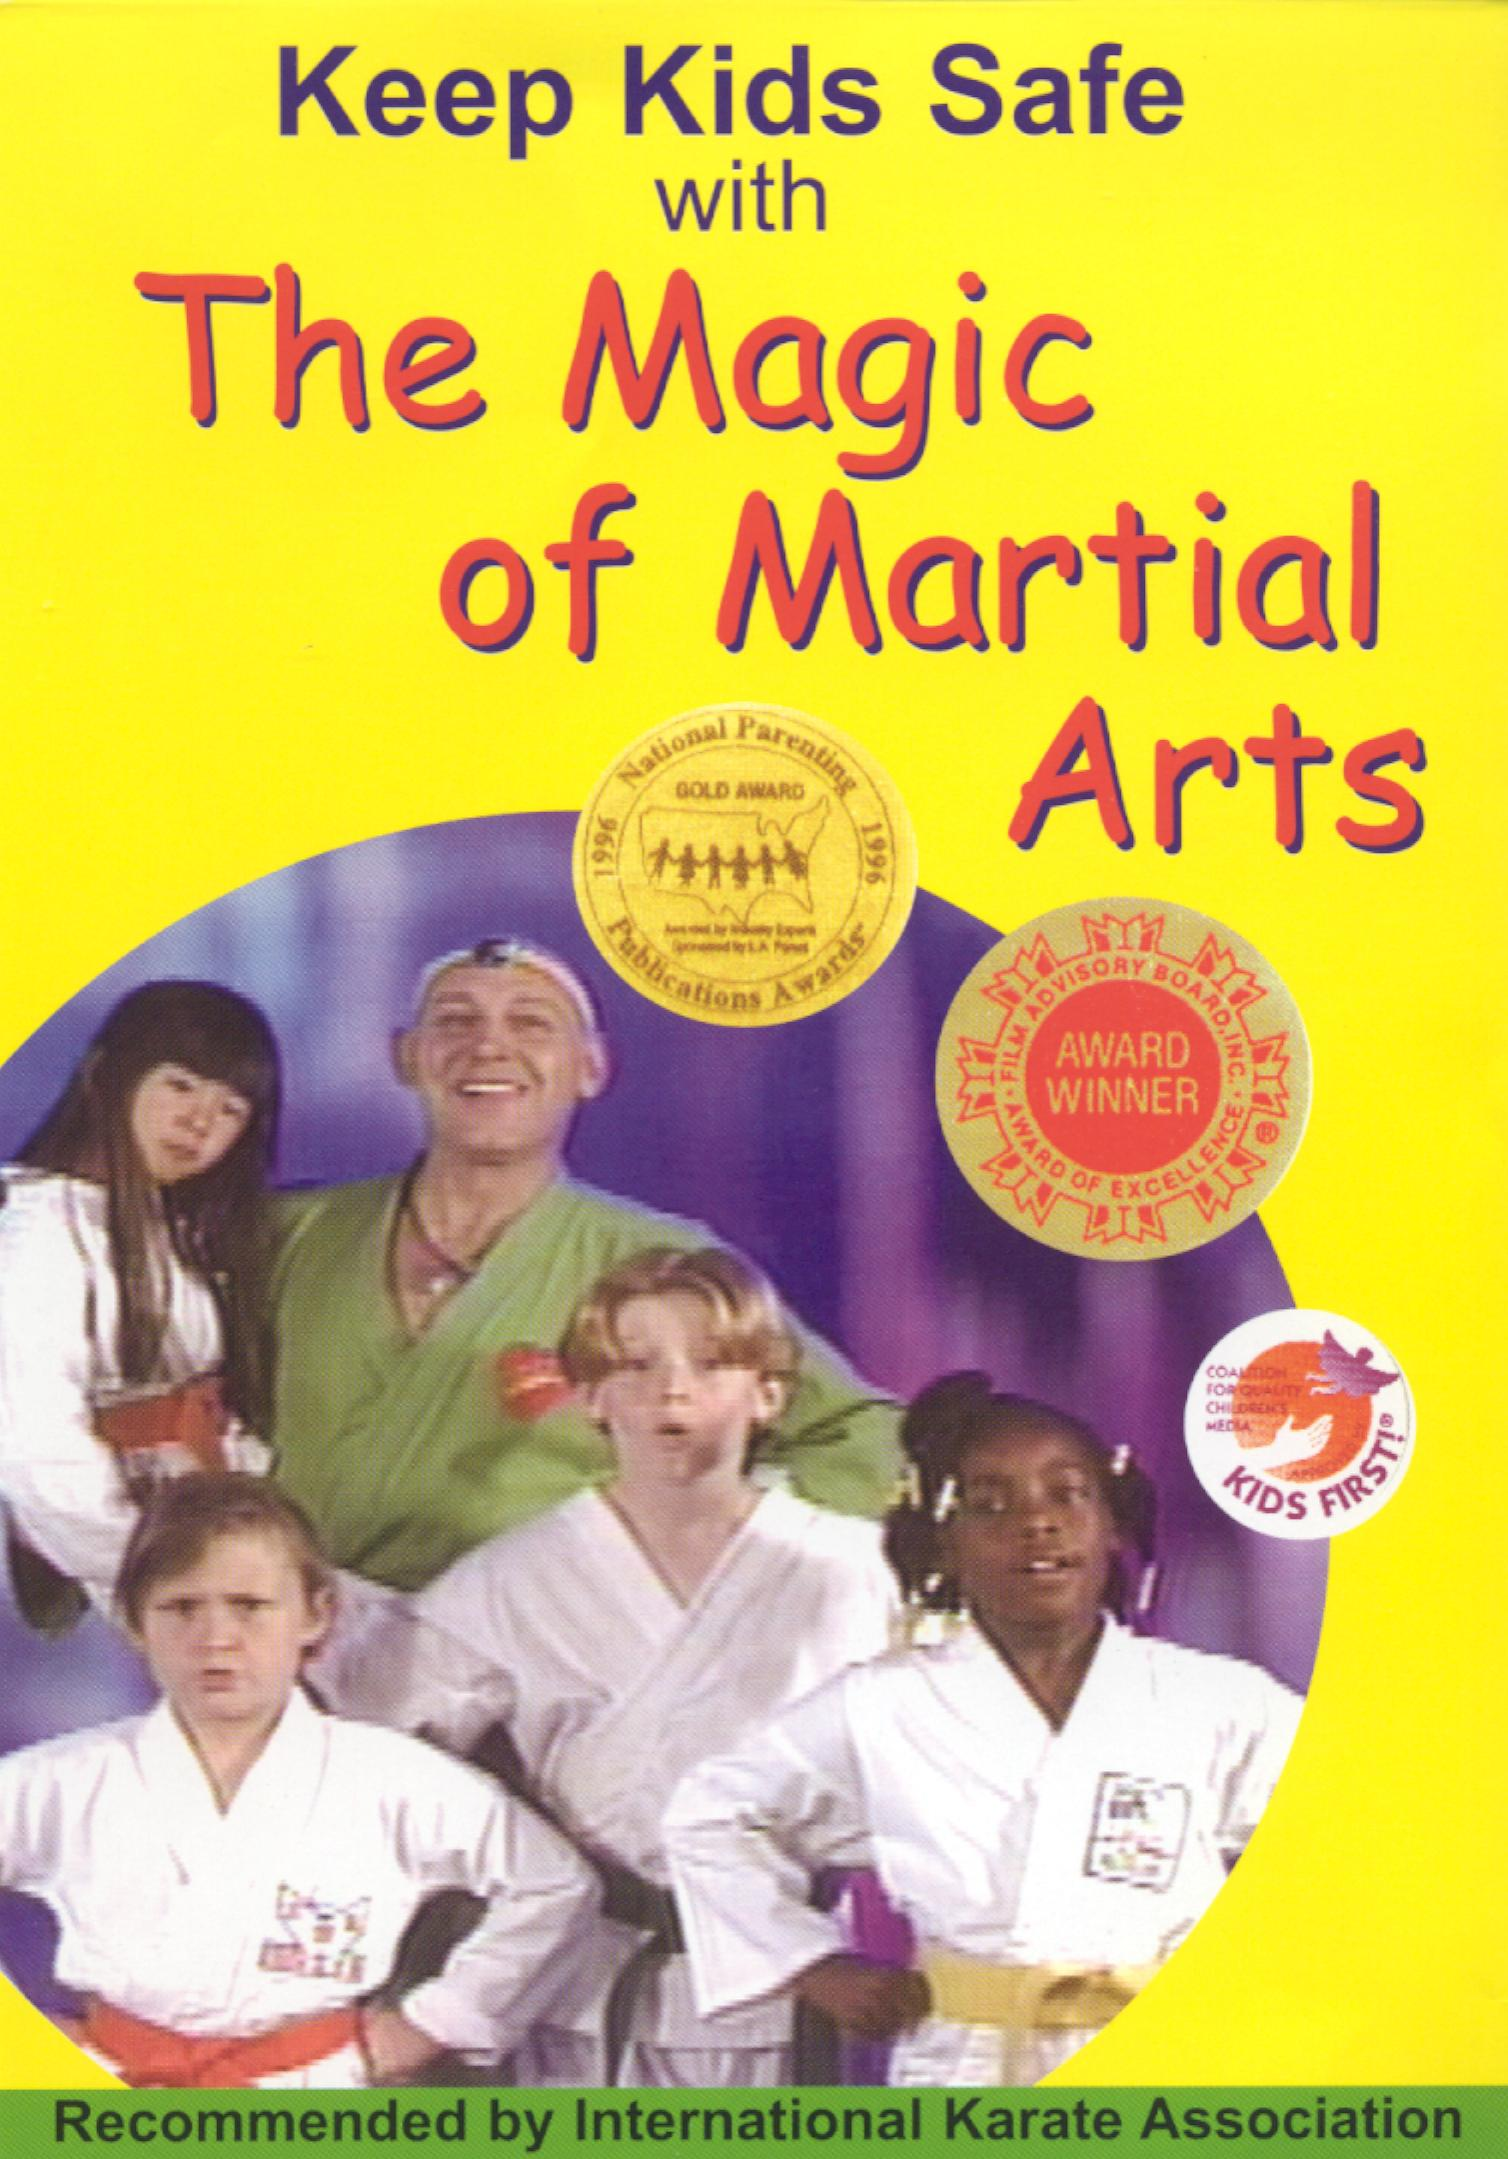 The Magic of Martial Arts